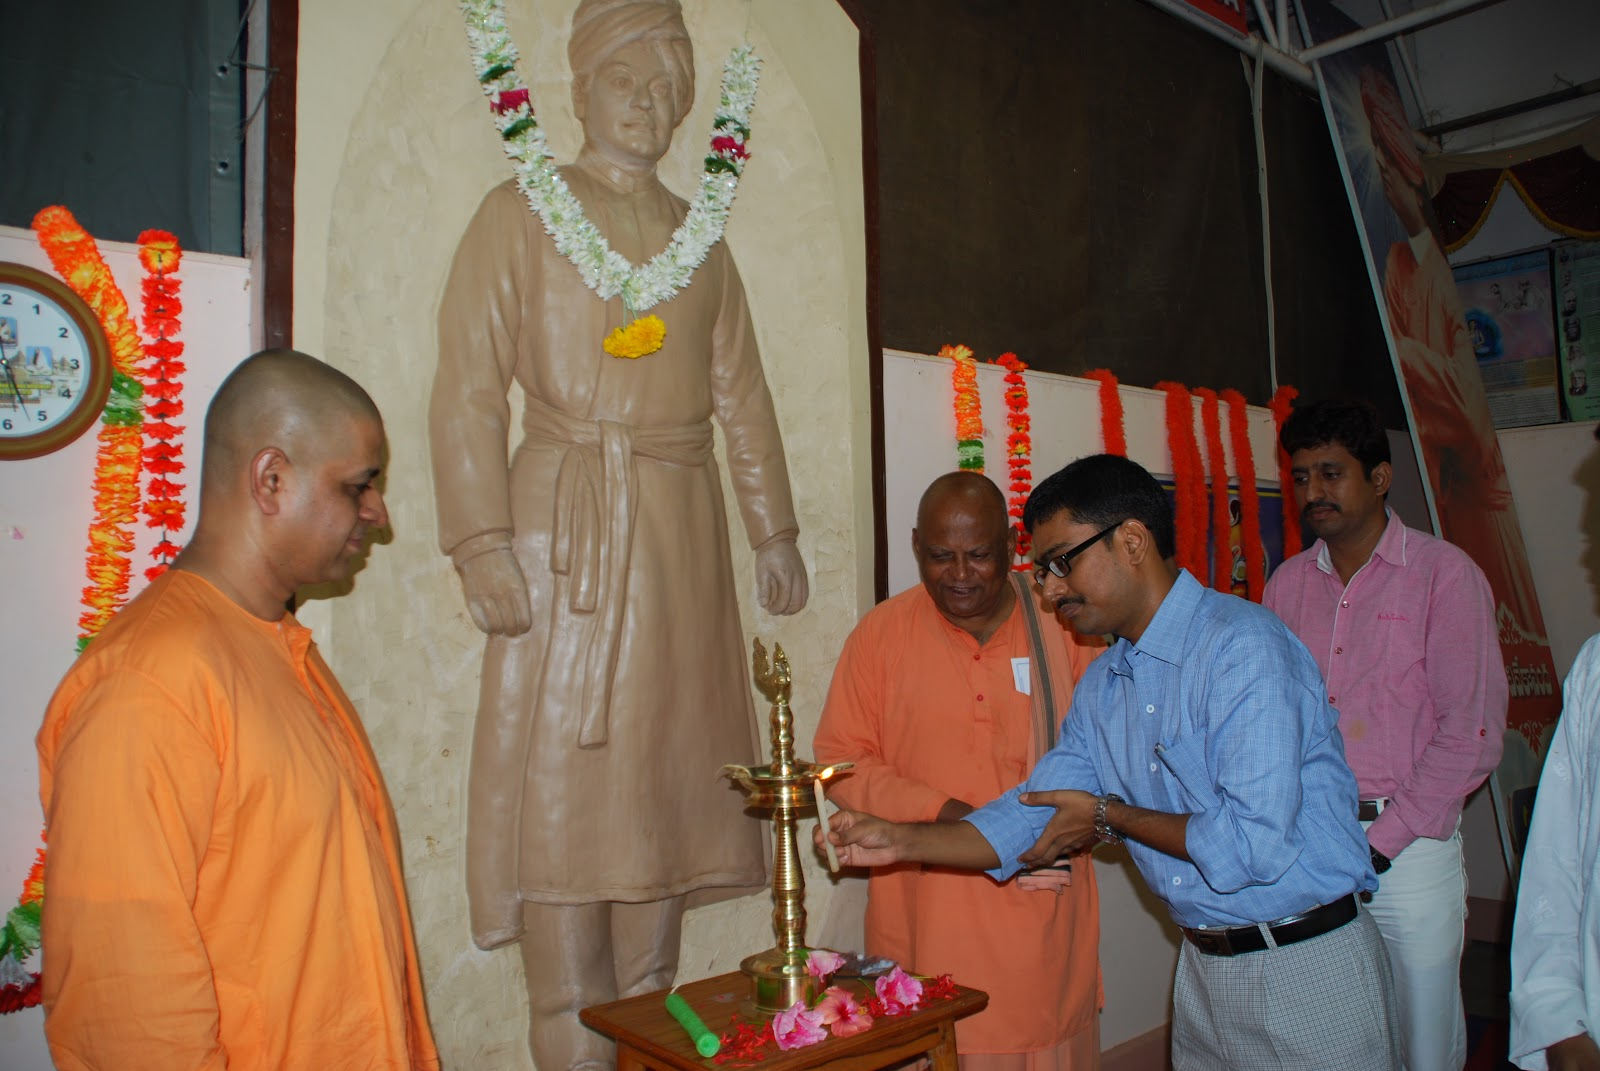 essay on 150th birth anniversary of swami vivekananda in bengali The 150th birth anniversary of swami vivekananda was celebrated throughout the year all over india on january 12 swami vivekananda is a bilingual (bengali and hindi) four postage stamps released on swami vivekananda's 150th birth anniversary.